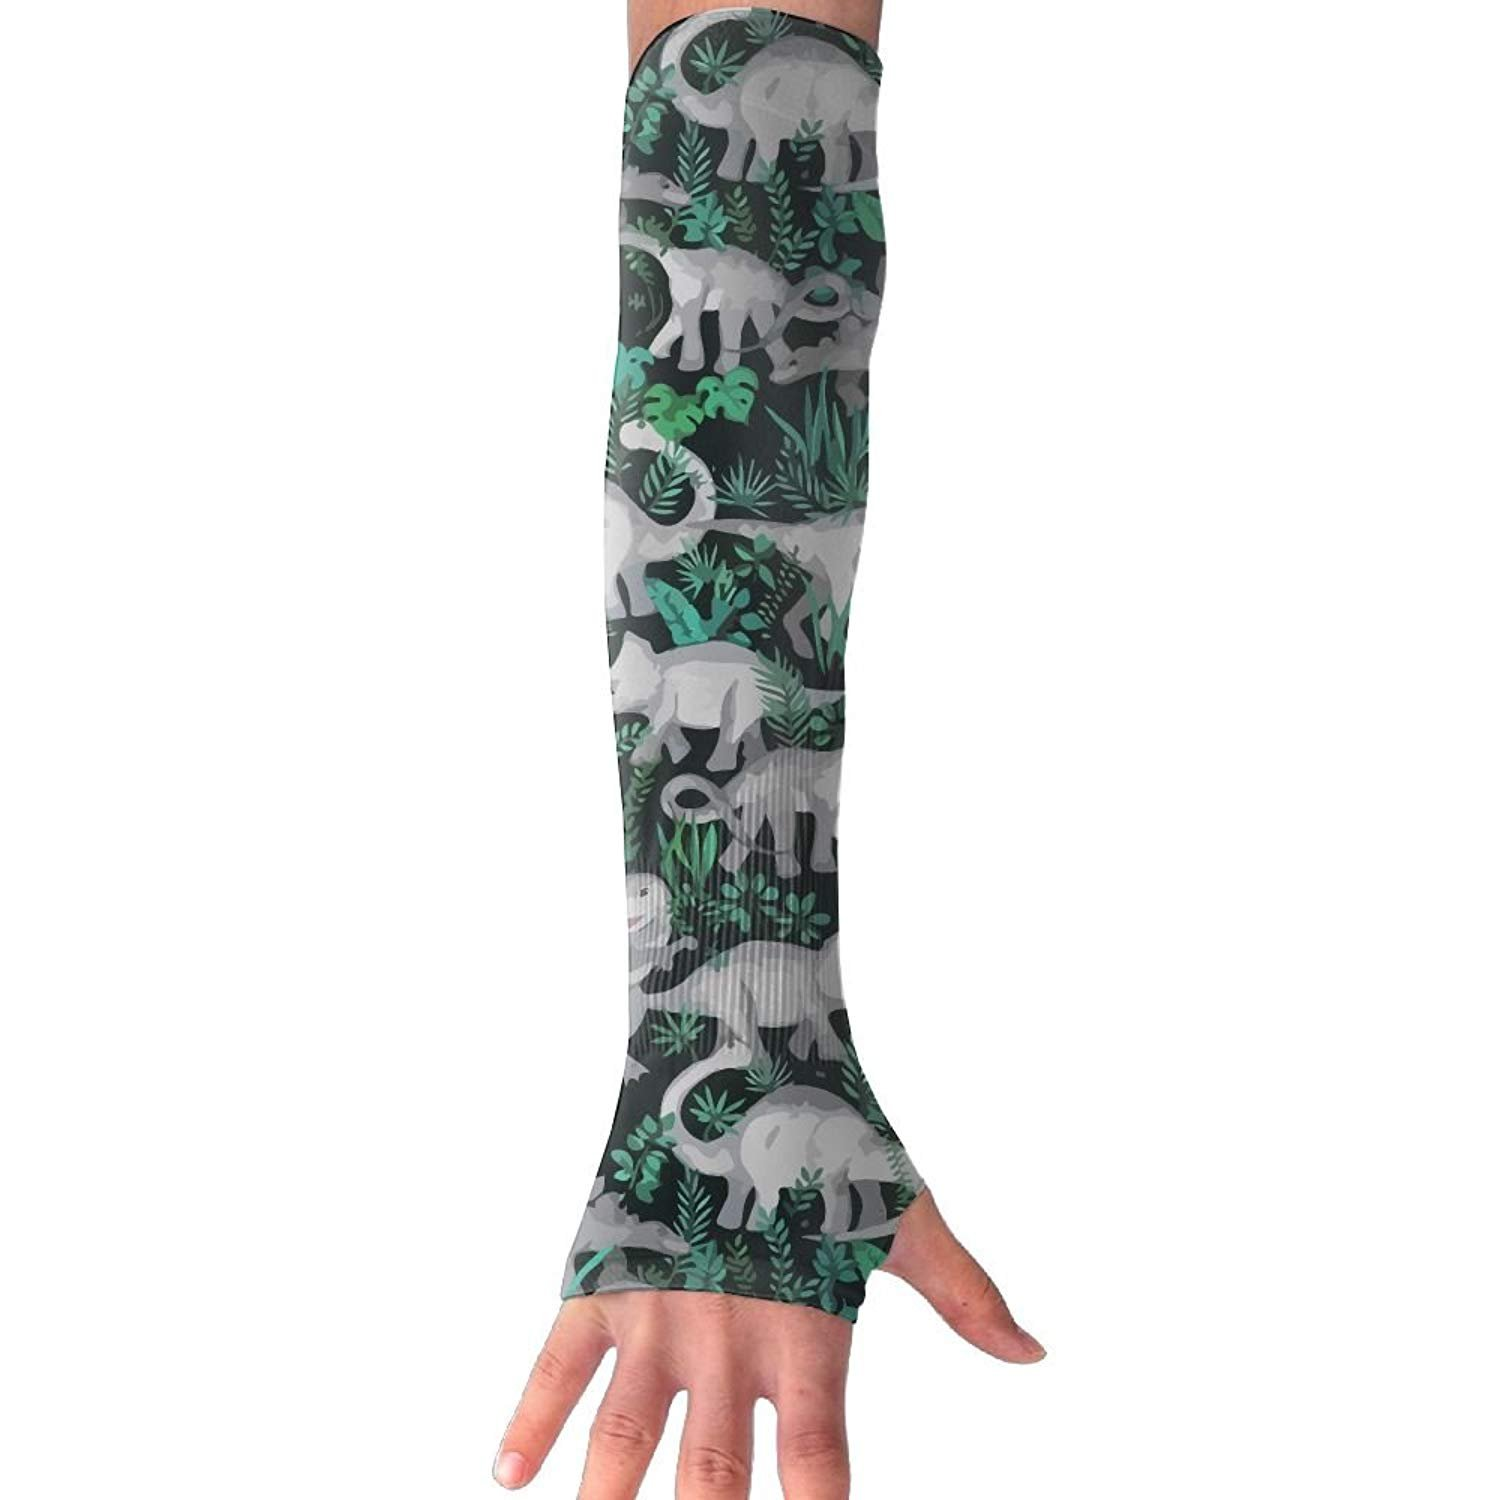 Unisex Watercolor Richo Dinosaur Sunscreen Outdoor Travel Arm Warmer Long Sleeves Glove